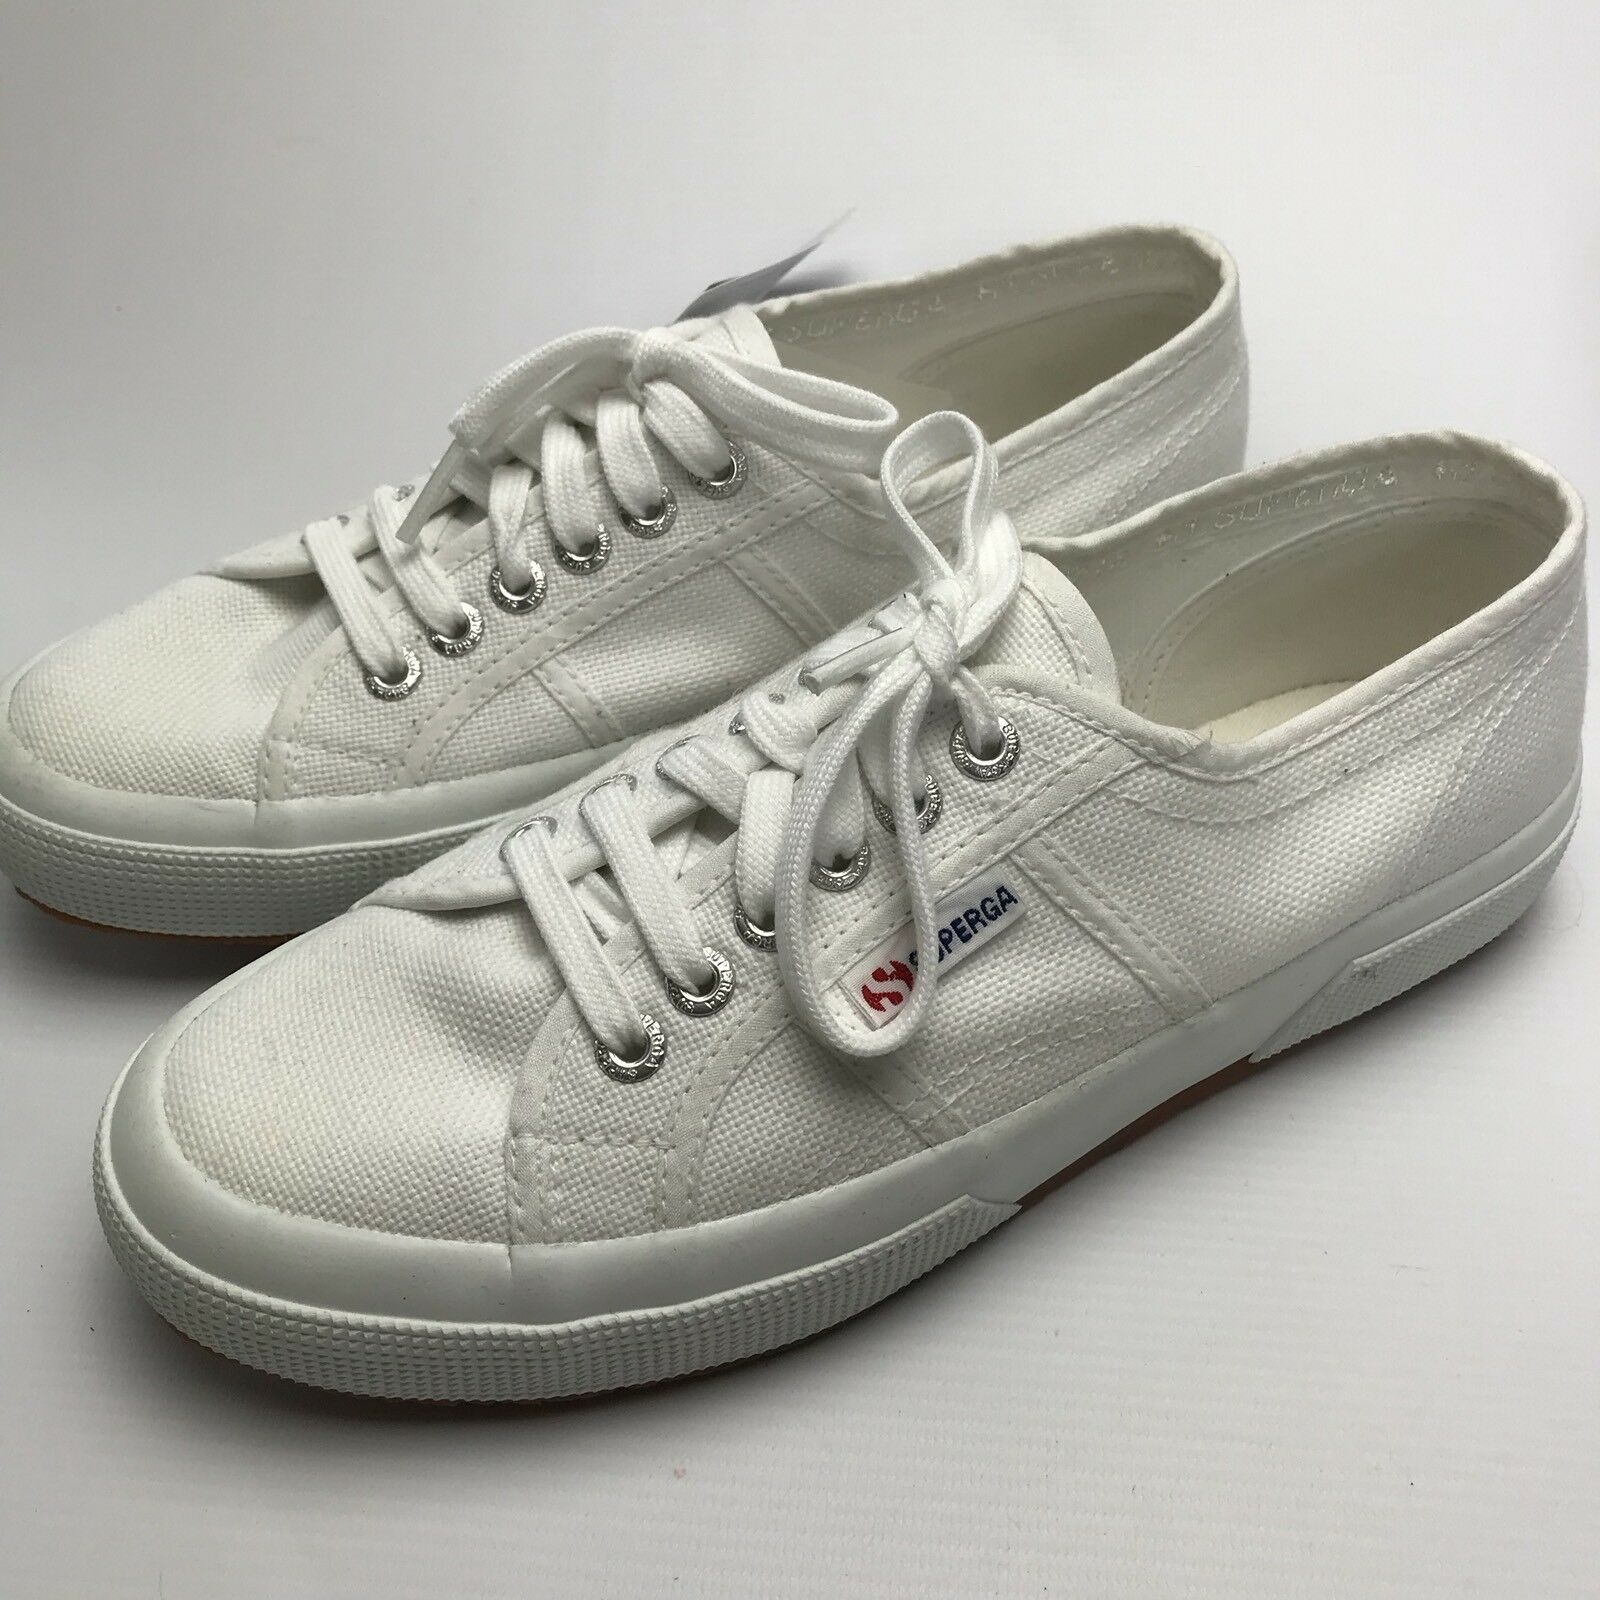 Superga 2750 Cotu Classic Womens White UK Canvas Trainers UK White 6 EUR 39.5 US 8.5 ec165b